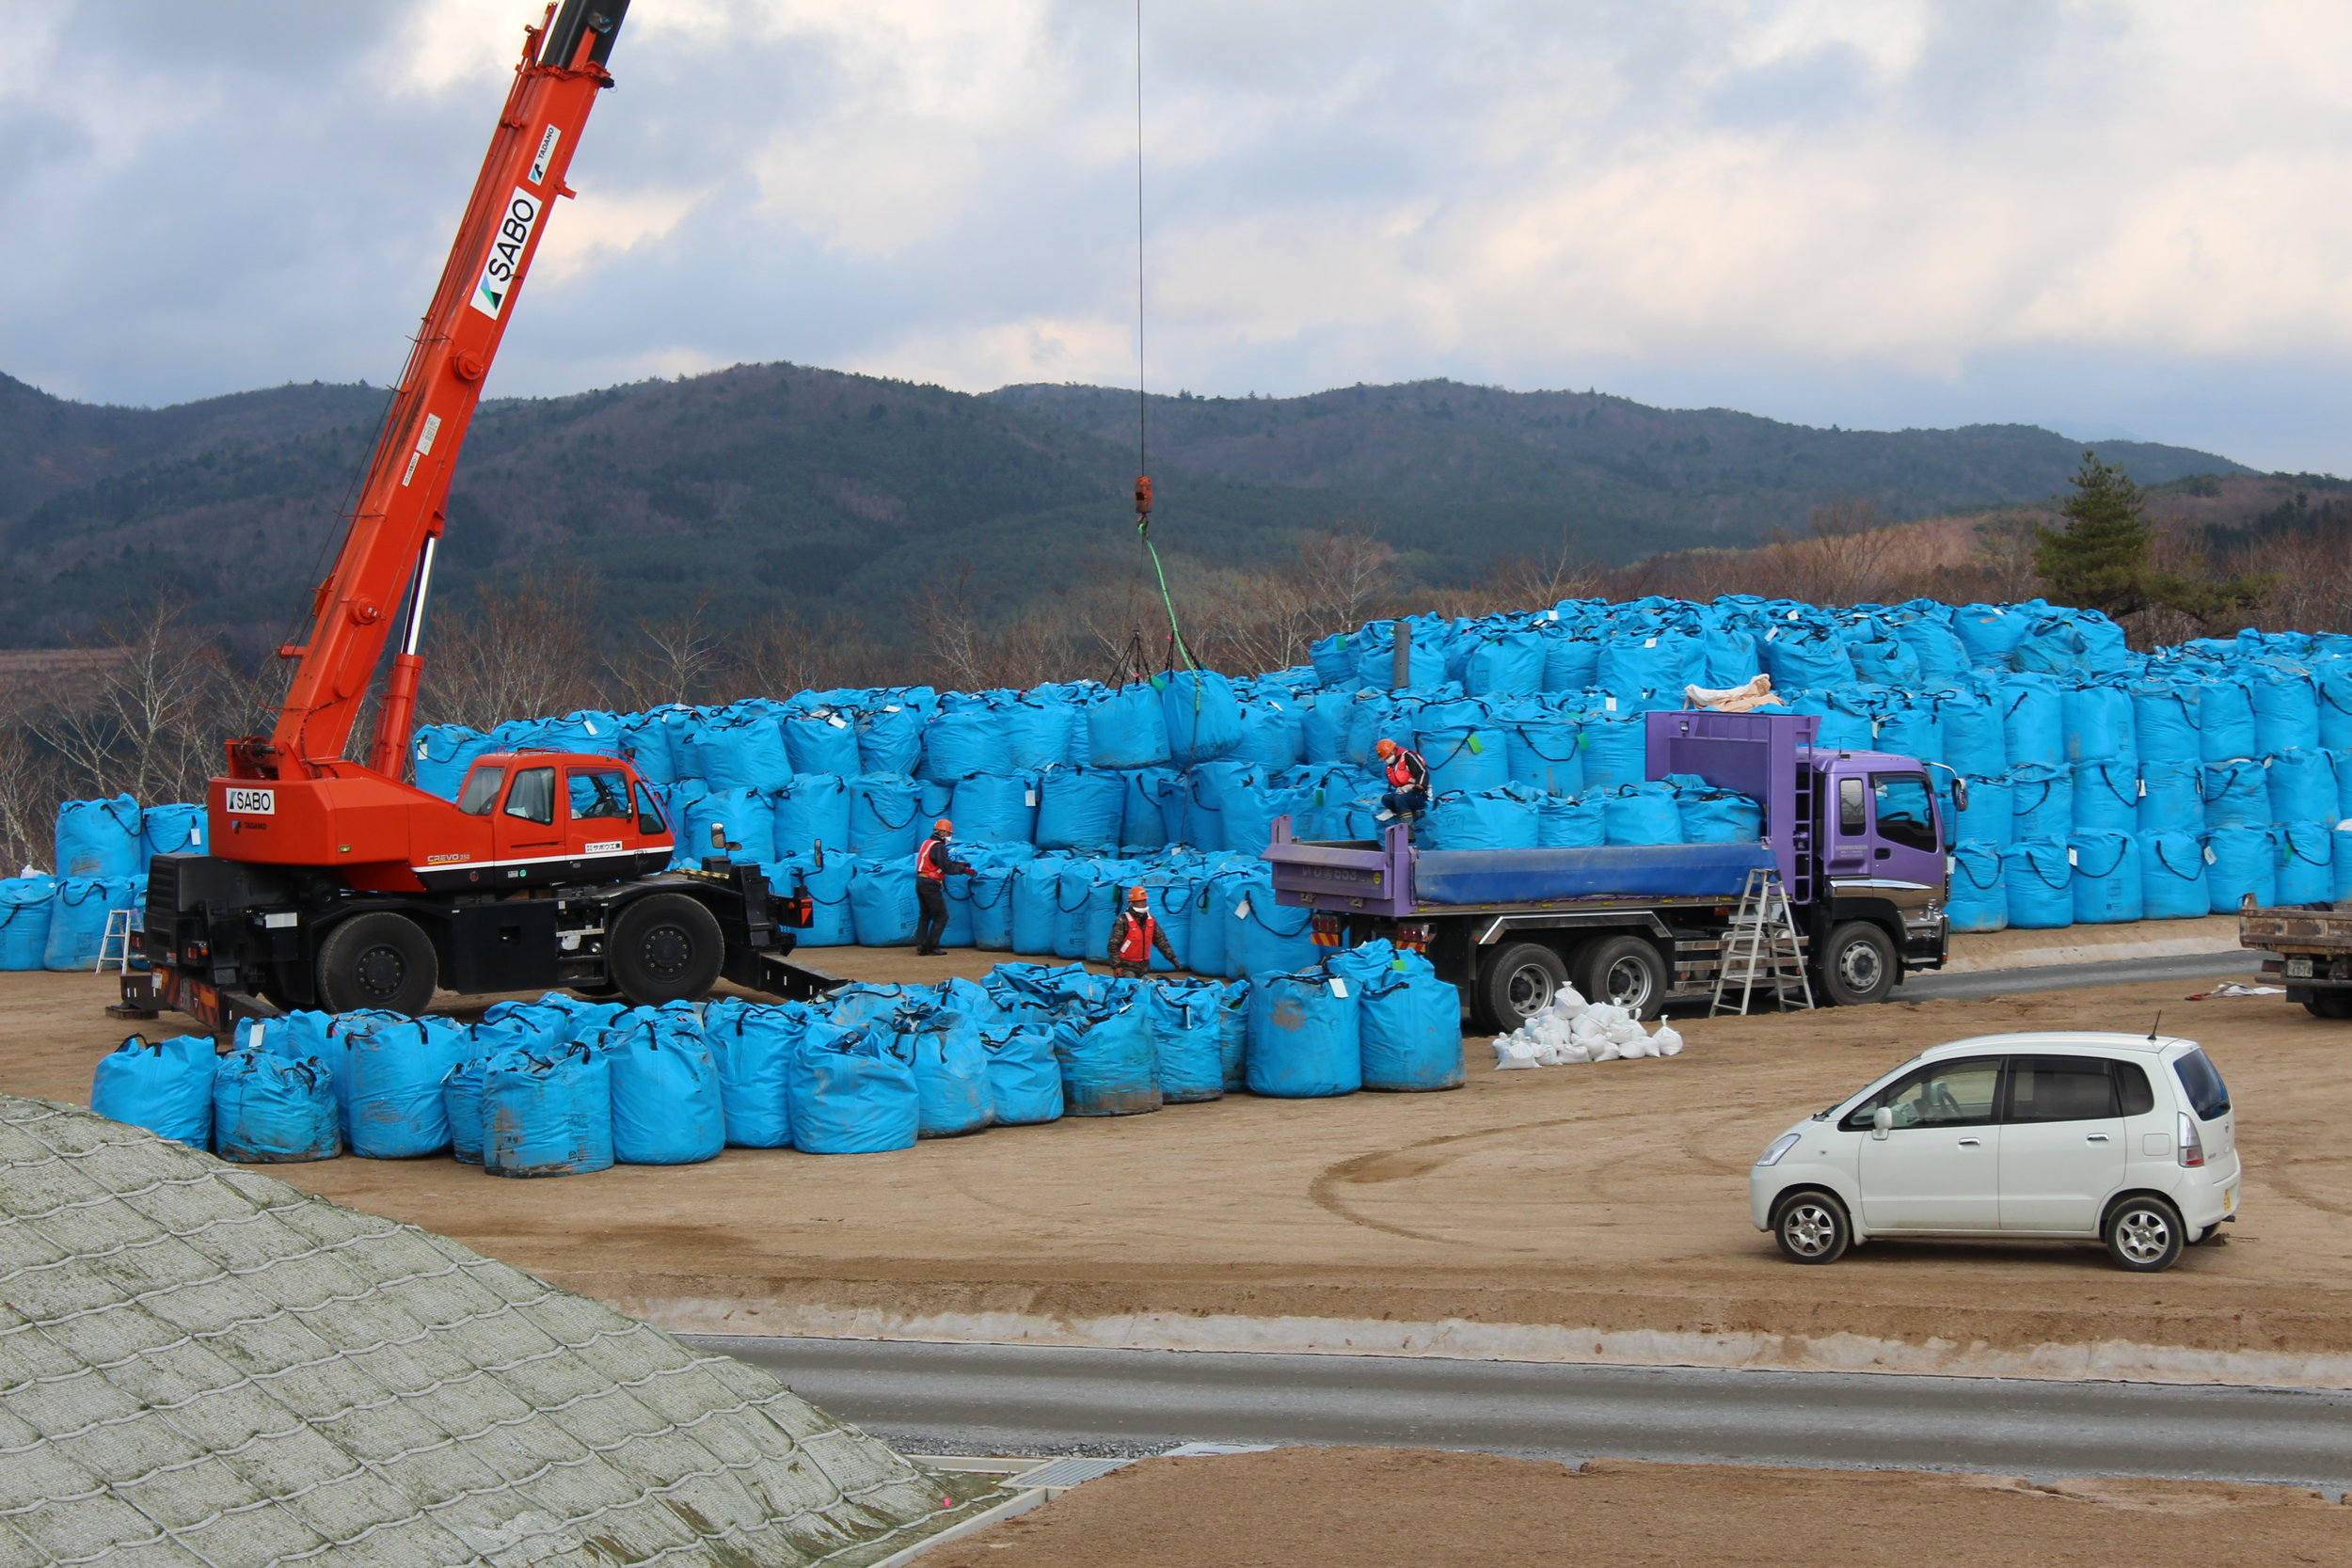 Bags of radioative waste awaiting some final, safe resting place.7.JPG